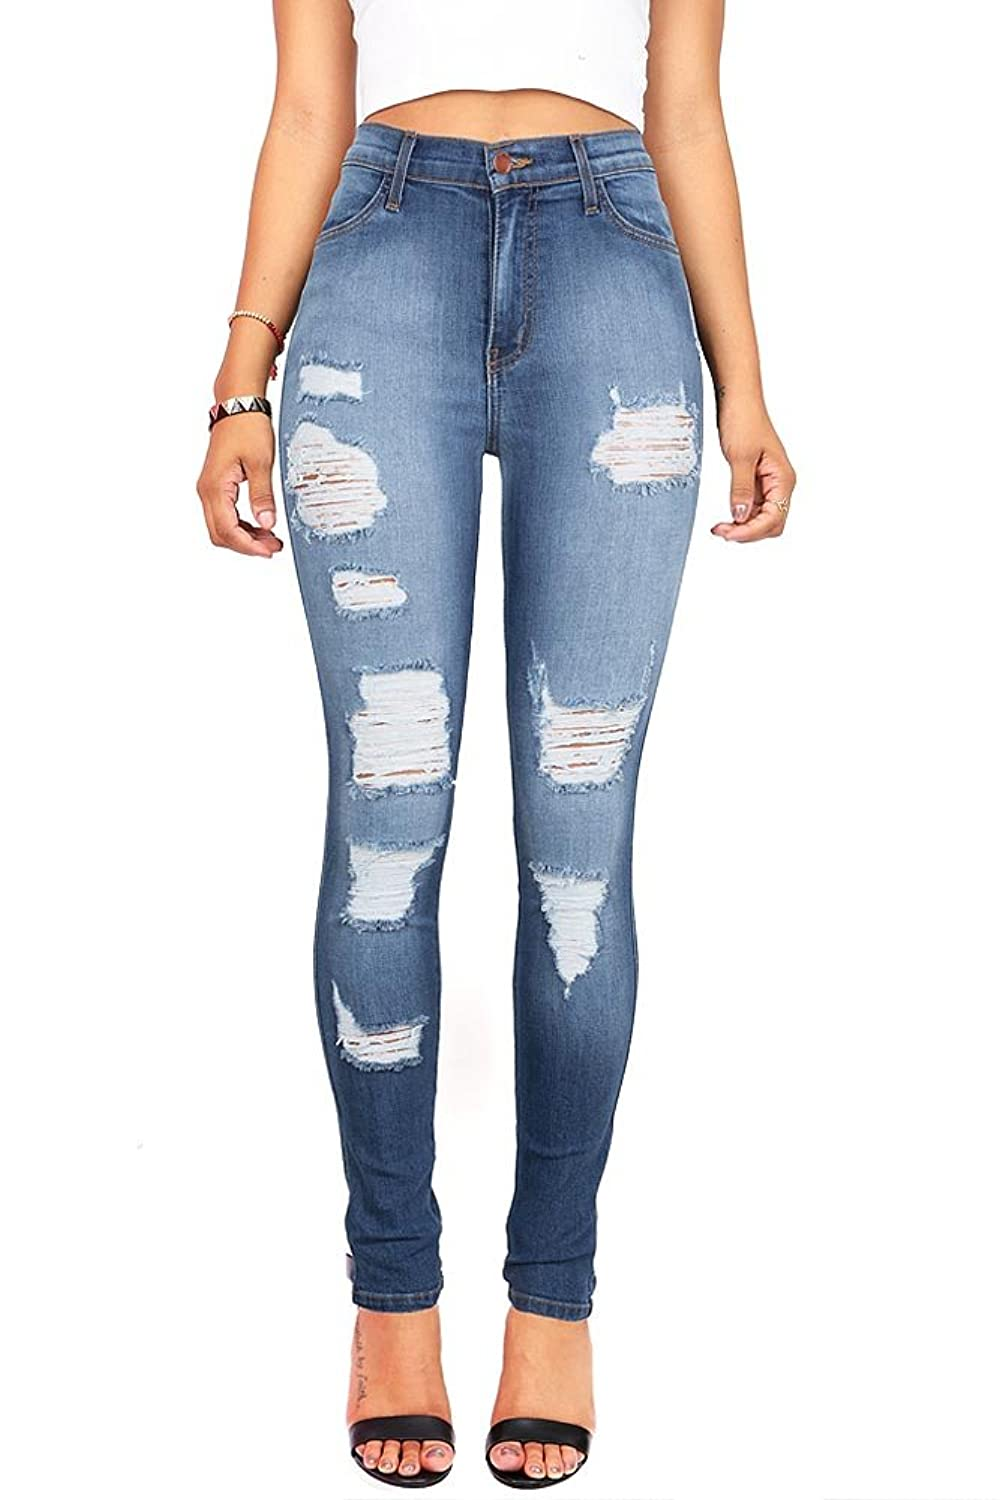 Vibrant Women's Juniors High Rise Distressed Skinny Jeans